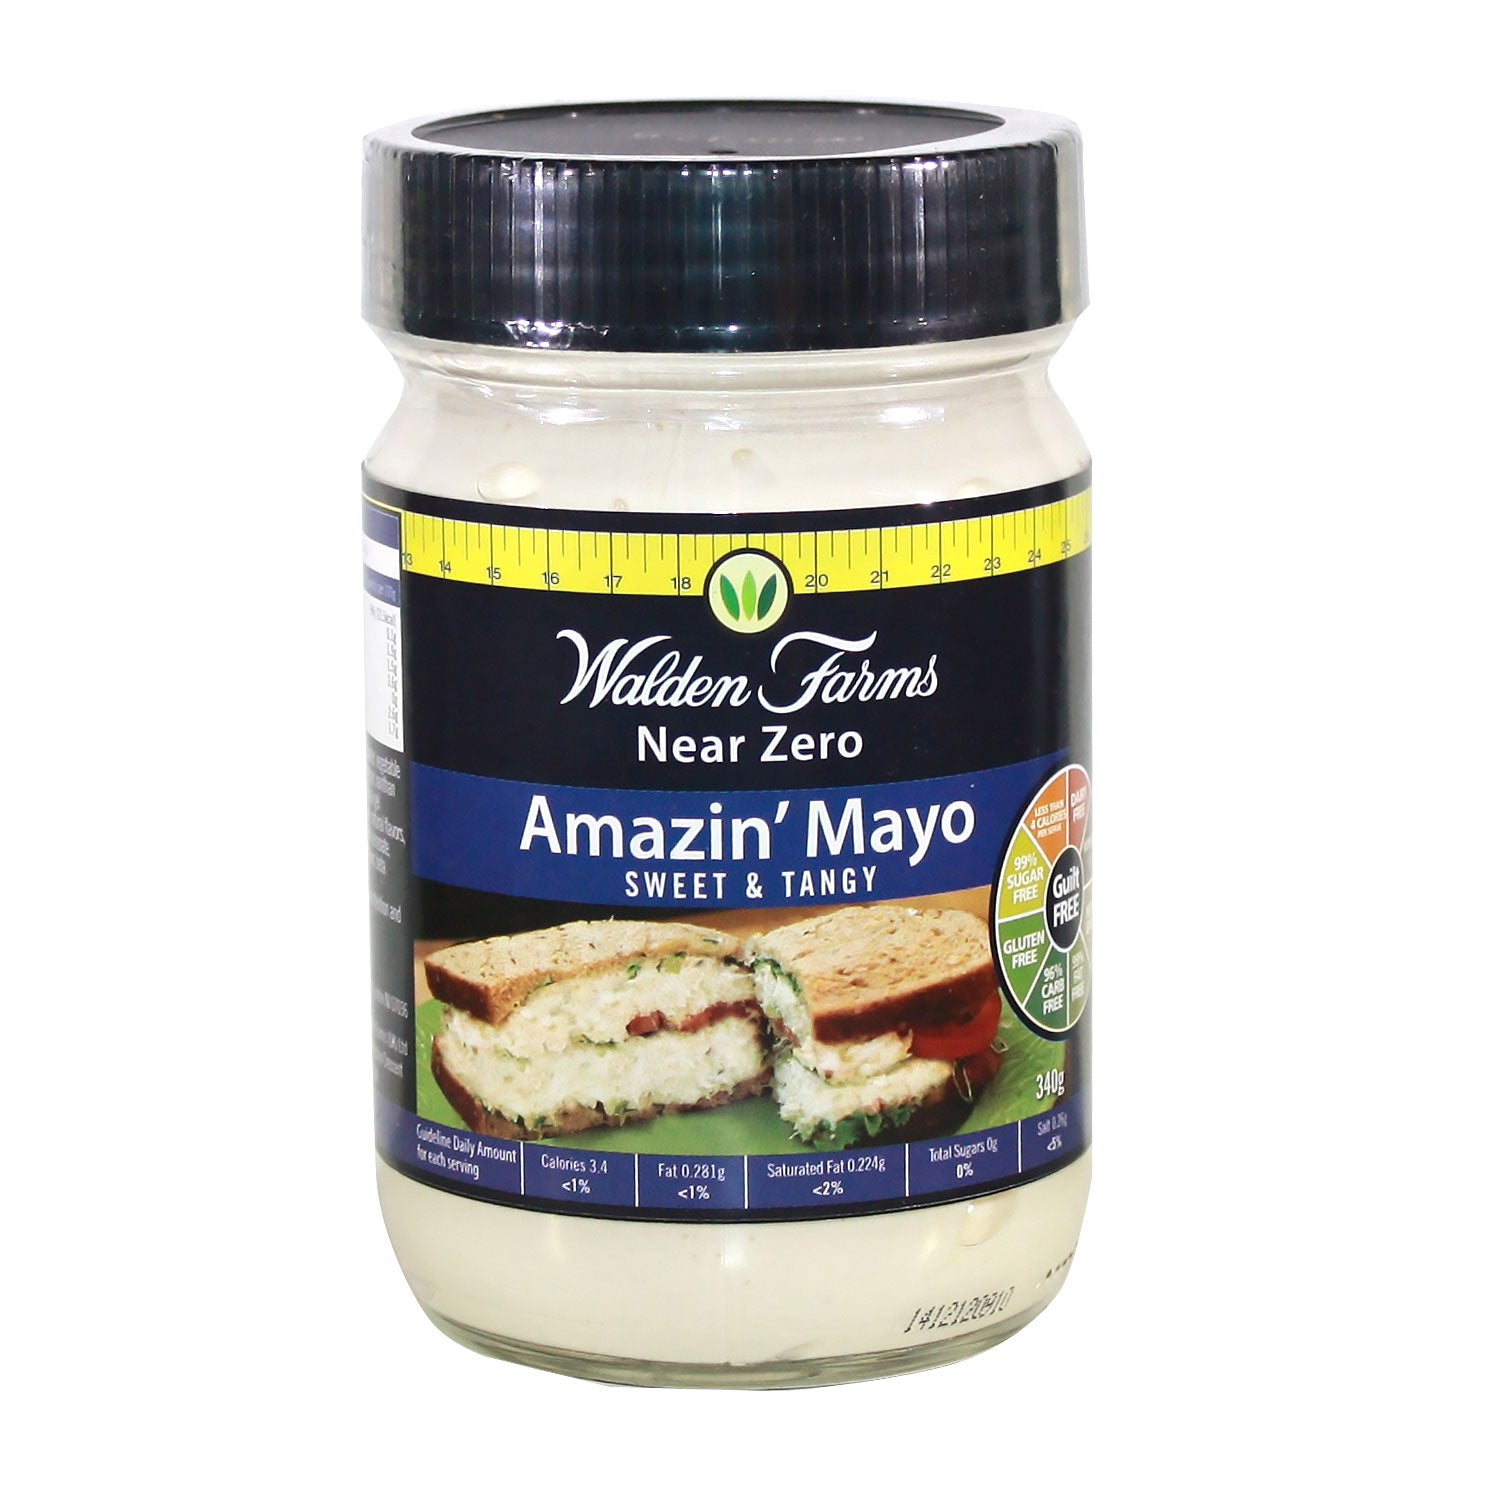 Gluten Free Sweet & Tangy Amazin' Mayo with Near Zero Sugar and Fats